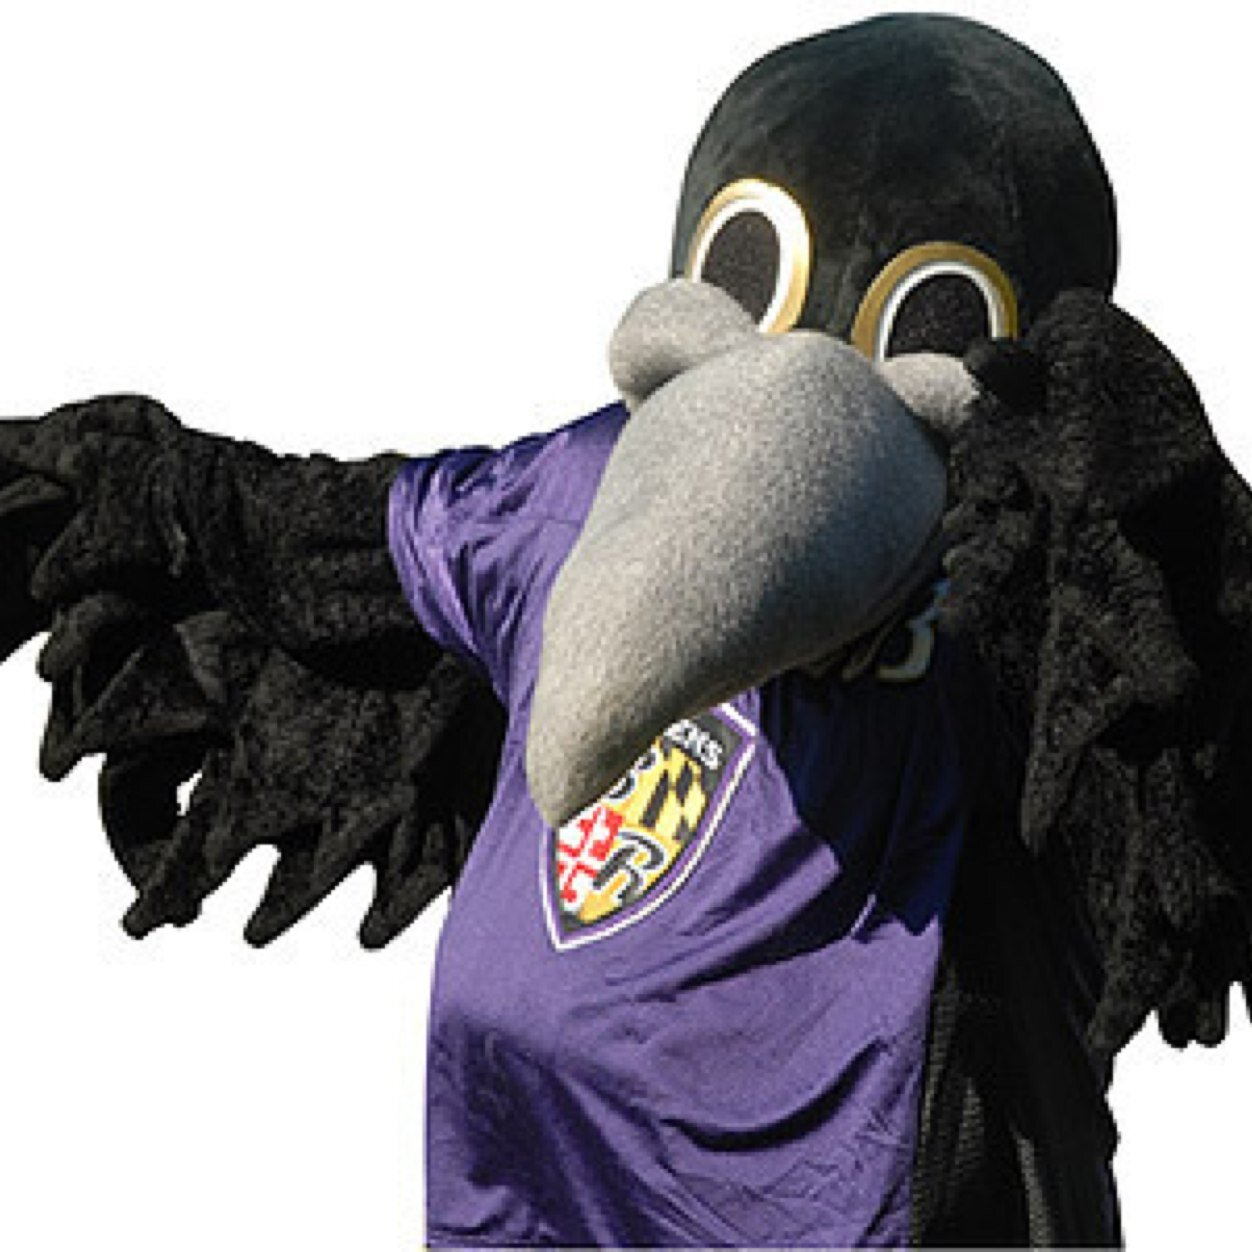 What is the baltimore ravens mascot name - Ravens Poe